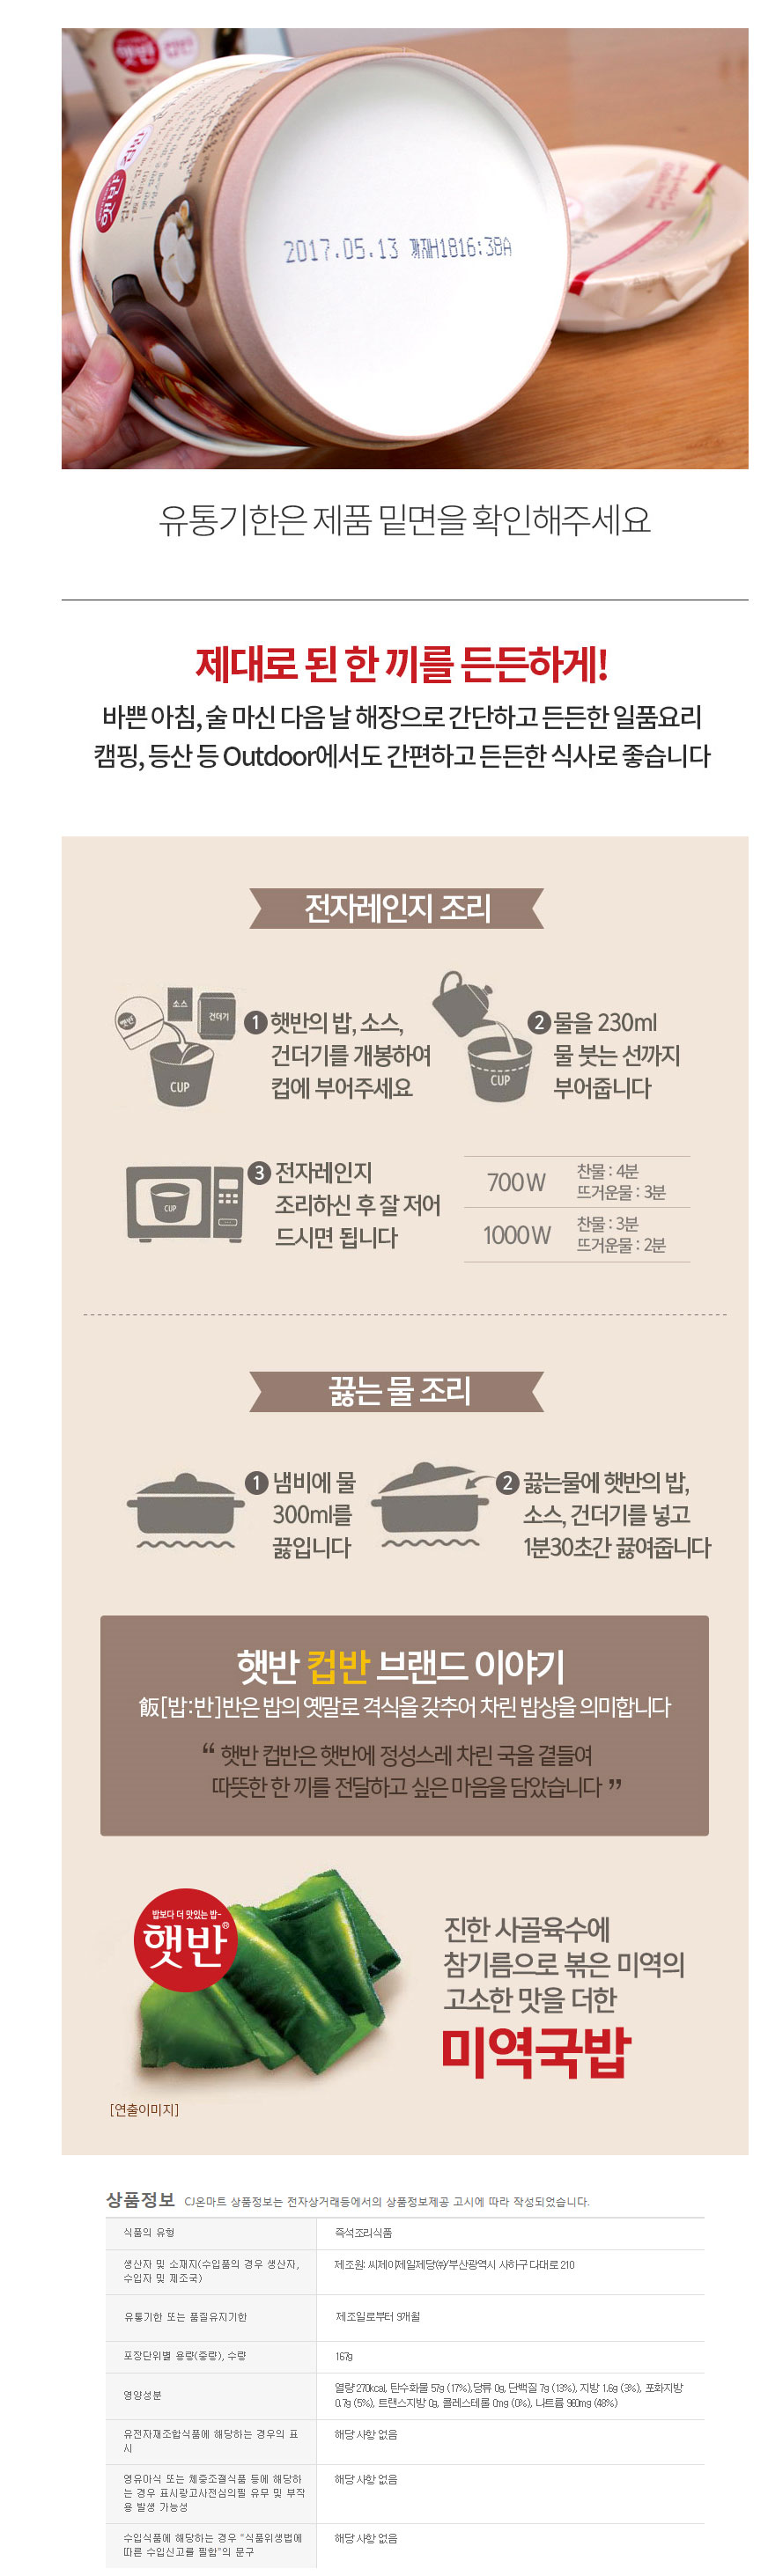 CJ Cooked White Rice with Seaweed Soup 5.9oz(167g), CJ 햇반 컵반 미역국밥 5.9oz(167g)